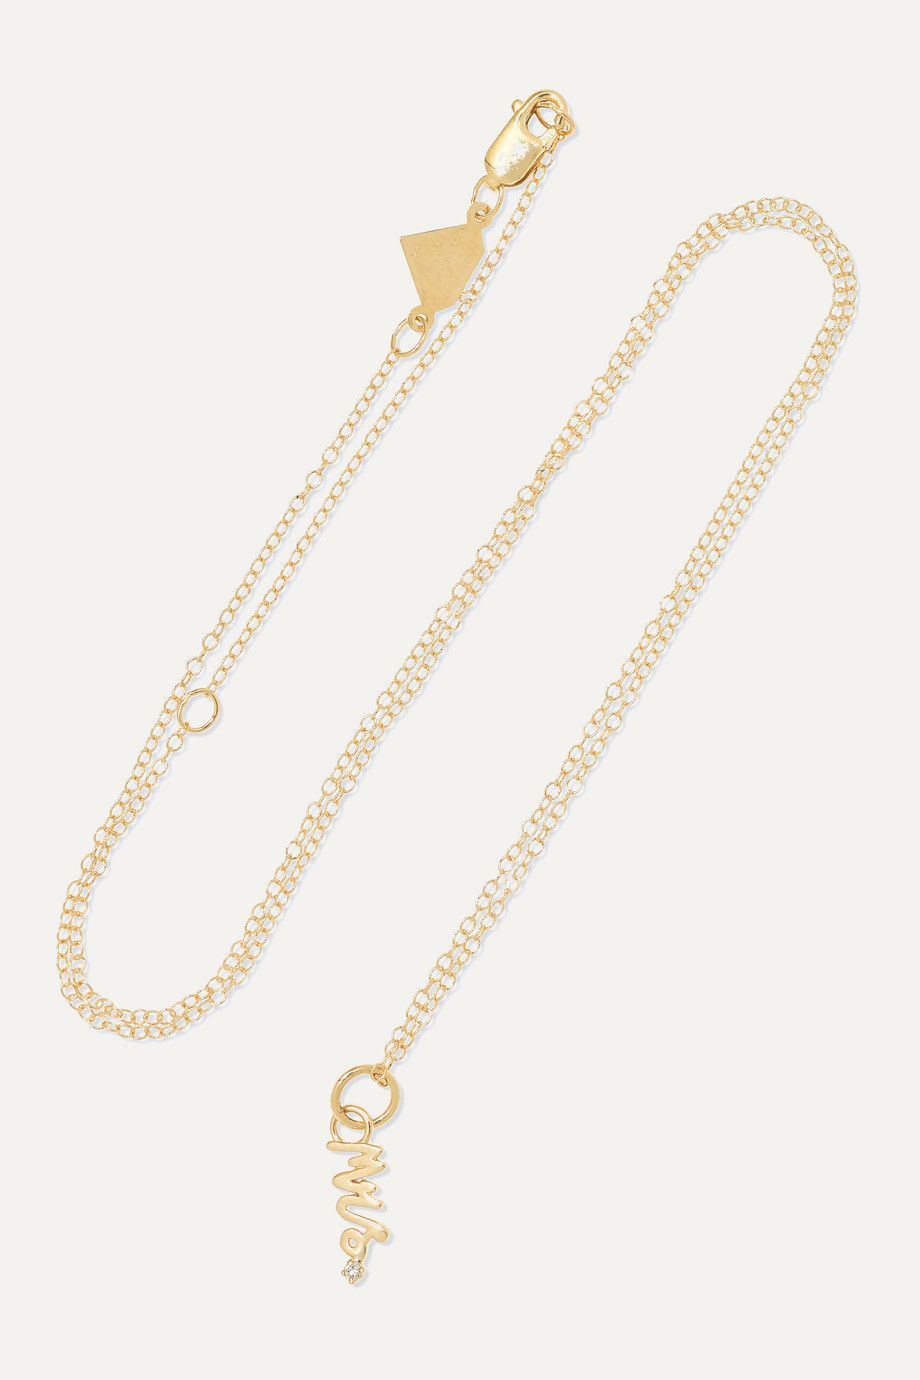 Alison Lou Mini Mrs. 14-karat gold diamond necklace